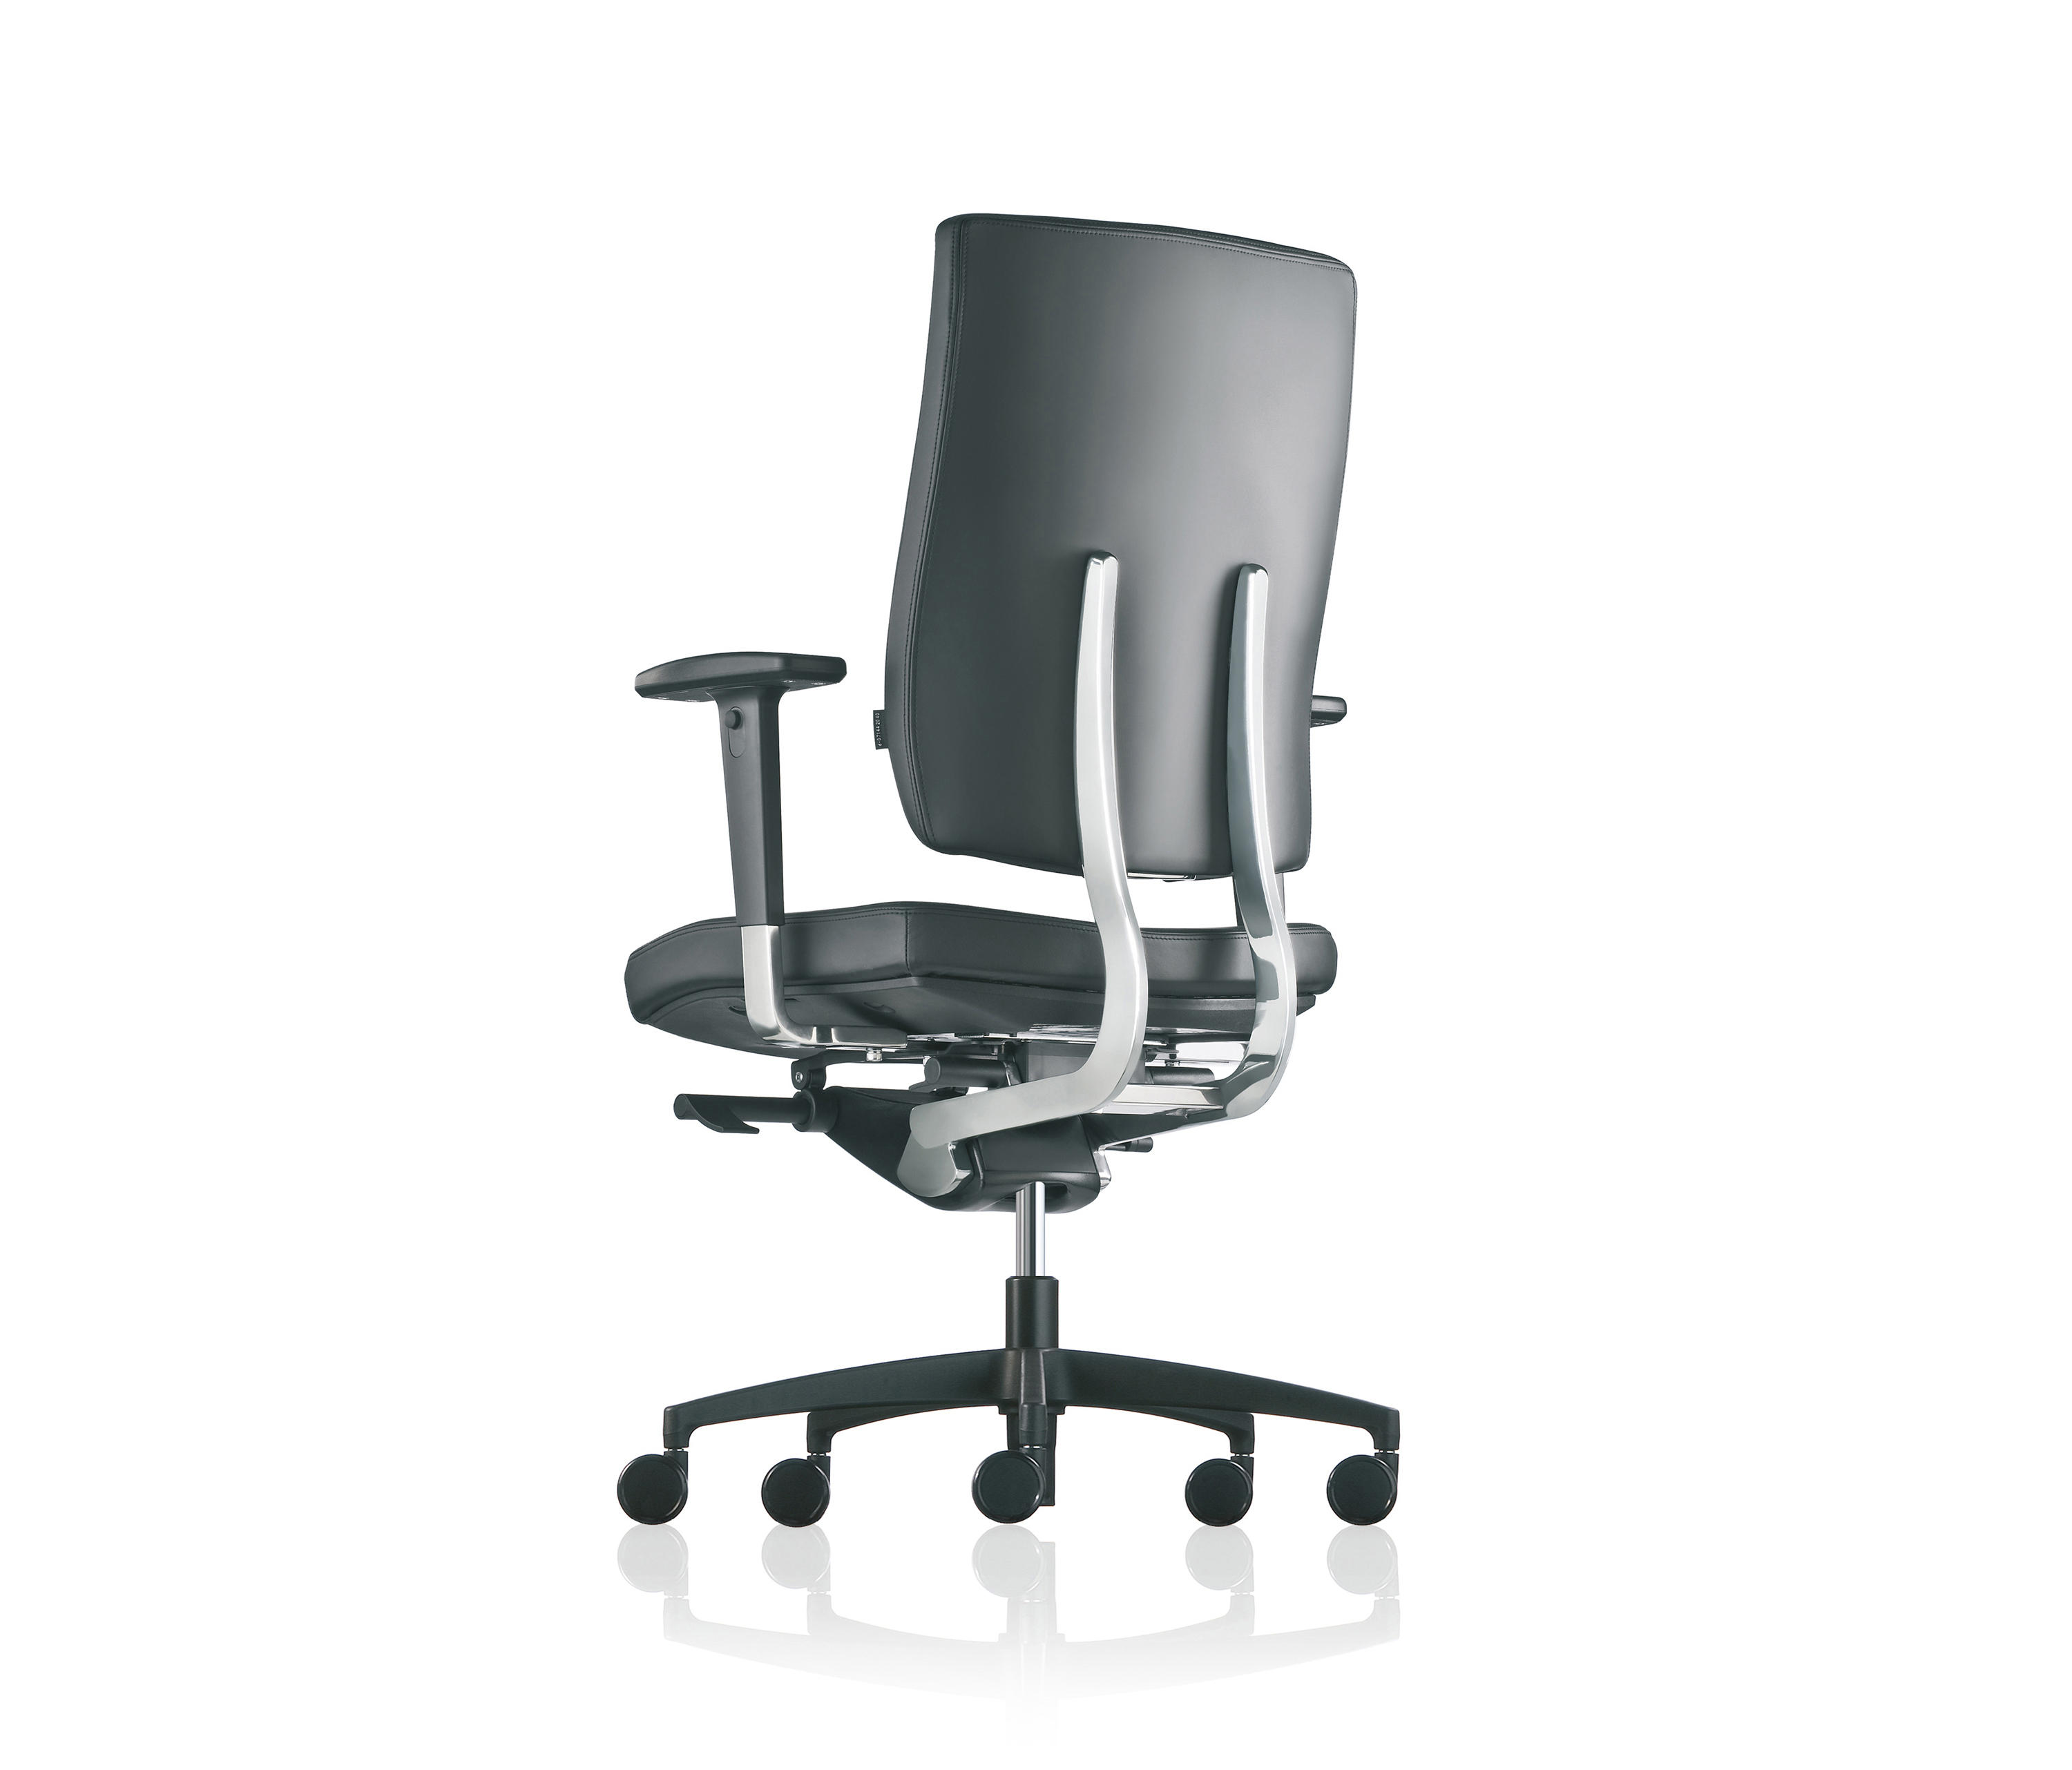 Sona swivel chair chaises de travail de fr scher for Chaise de travail